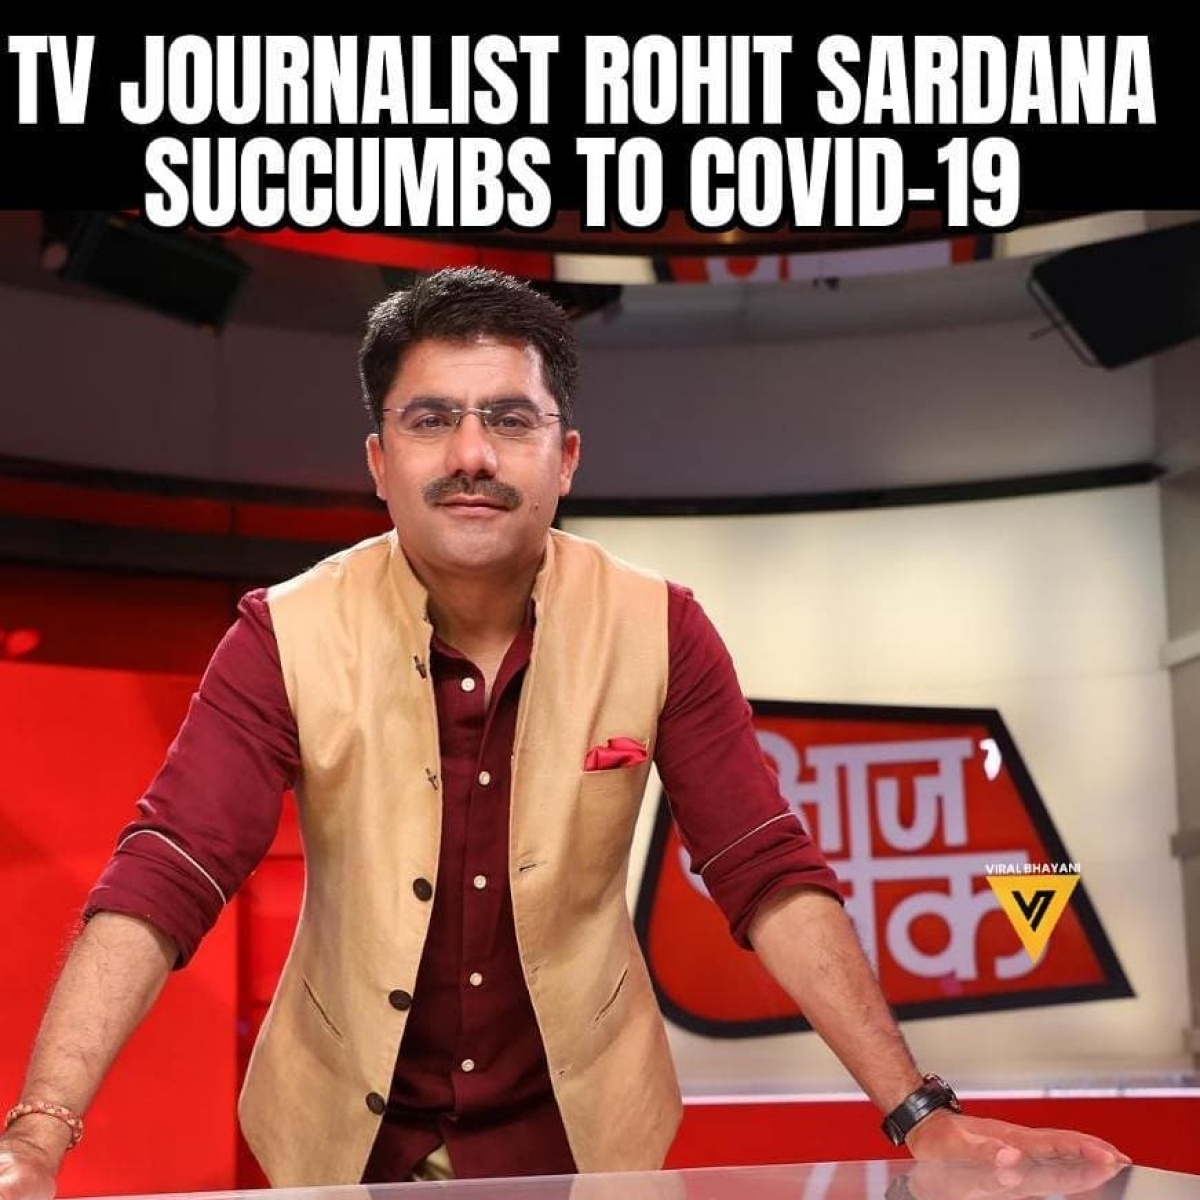 'Huge void in the media world': PM Modi, Amit Shah express grief over journalist Rohit Sardana's demise